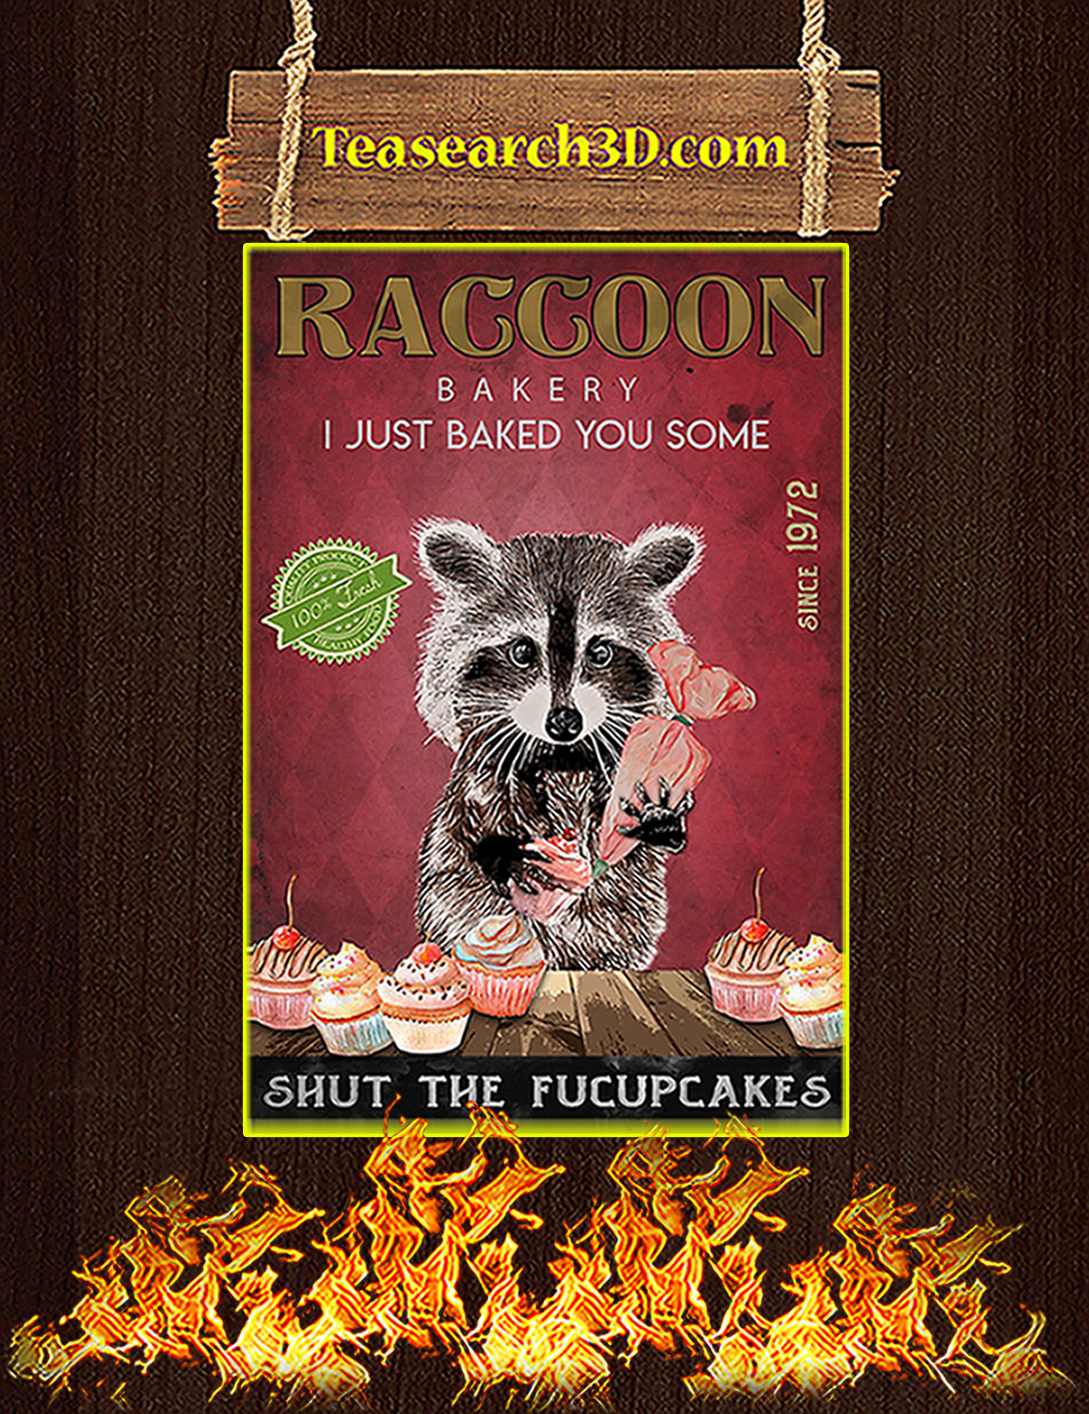 Raccoon bakery I just baked you some poster A2